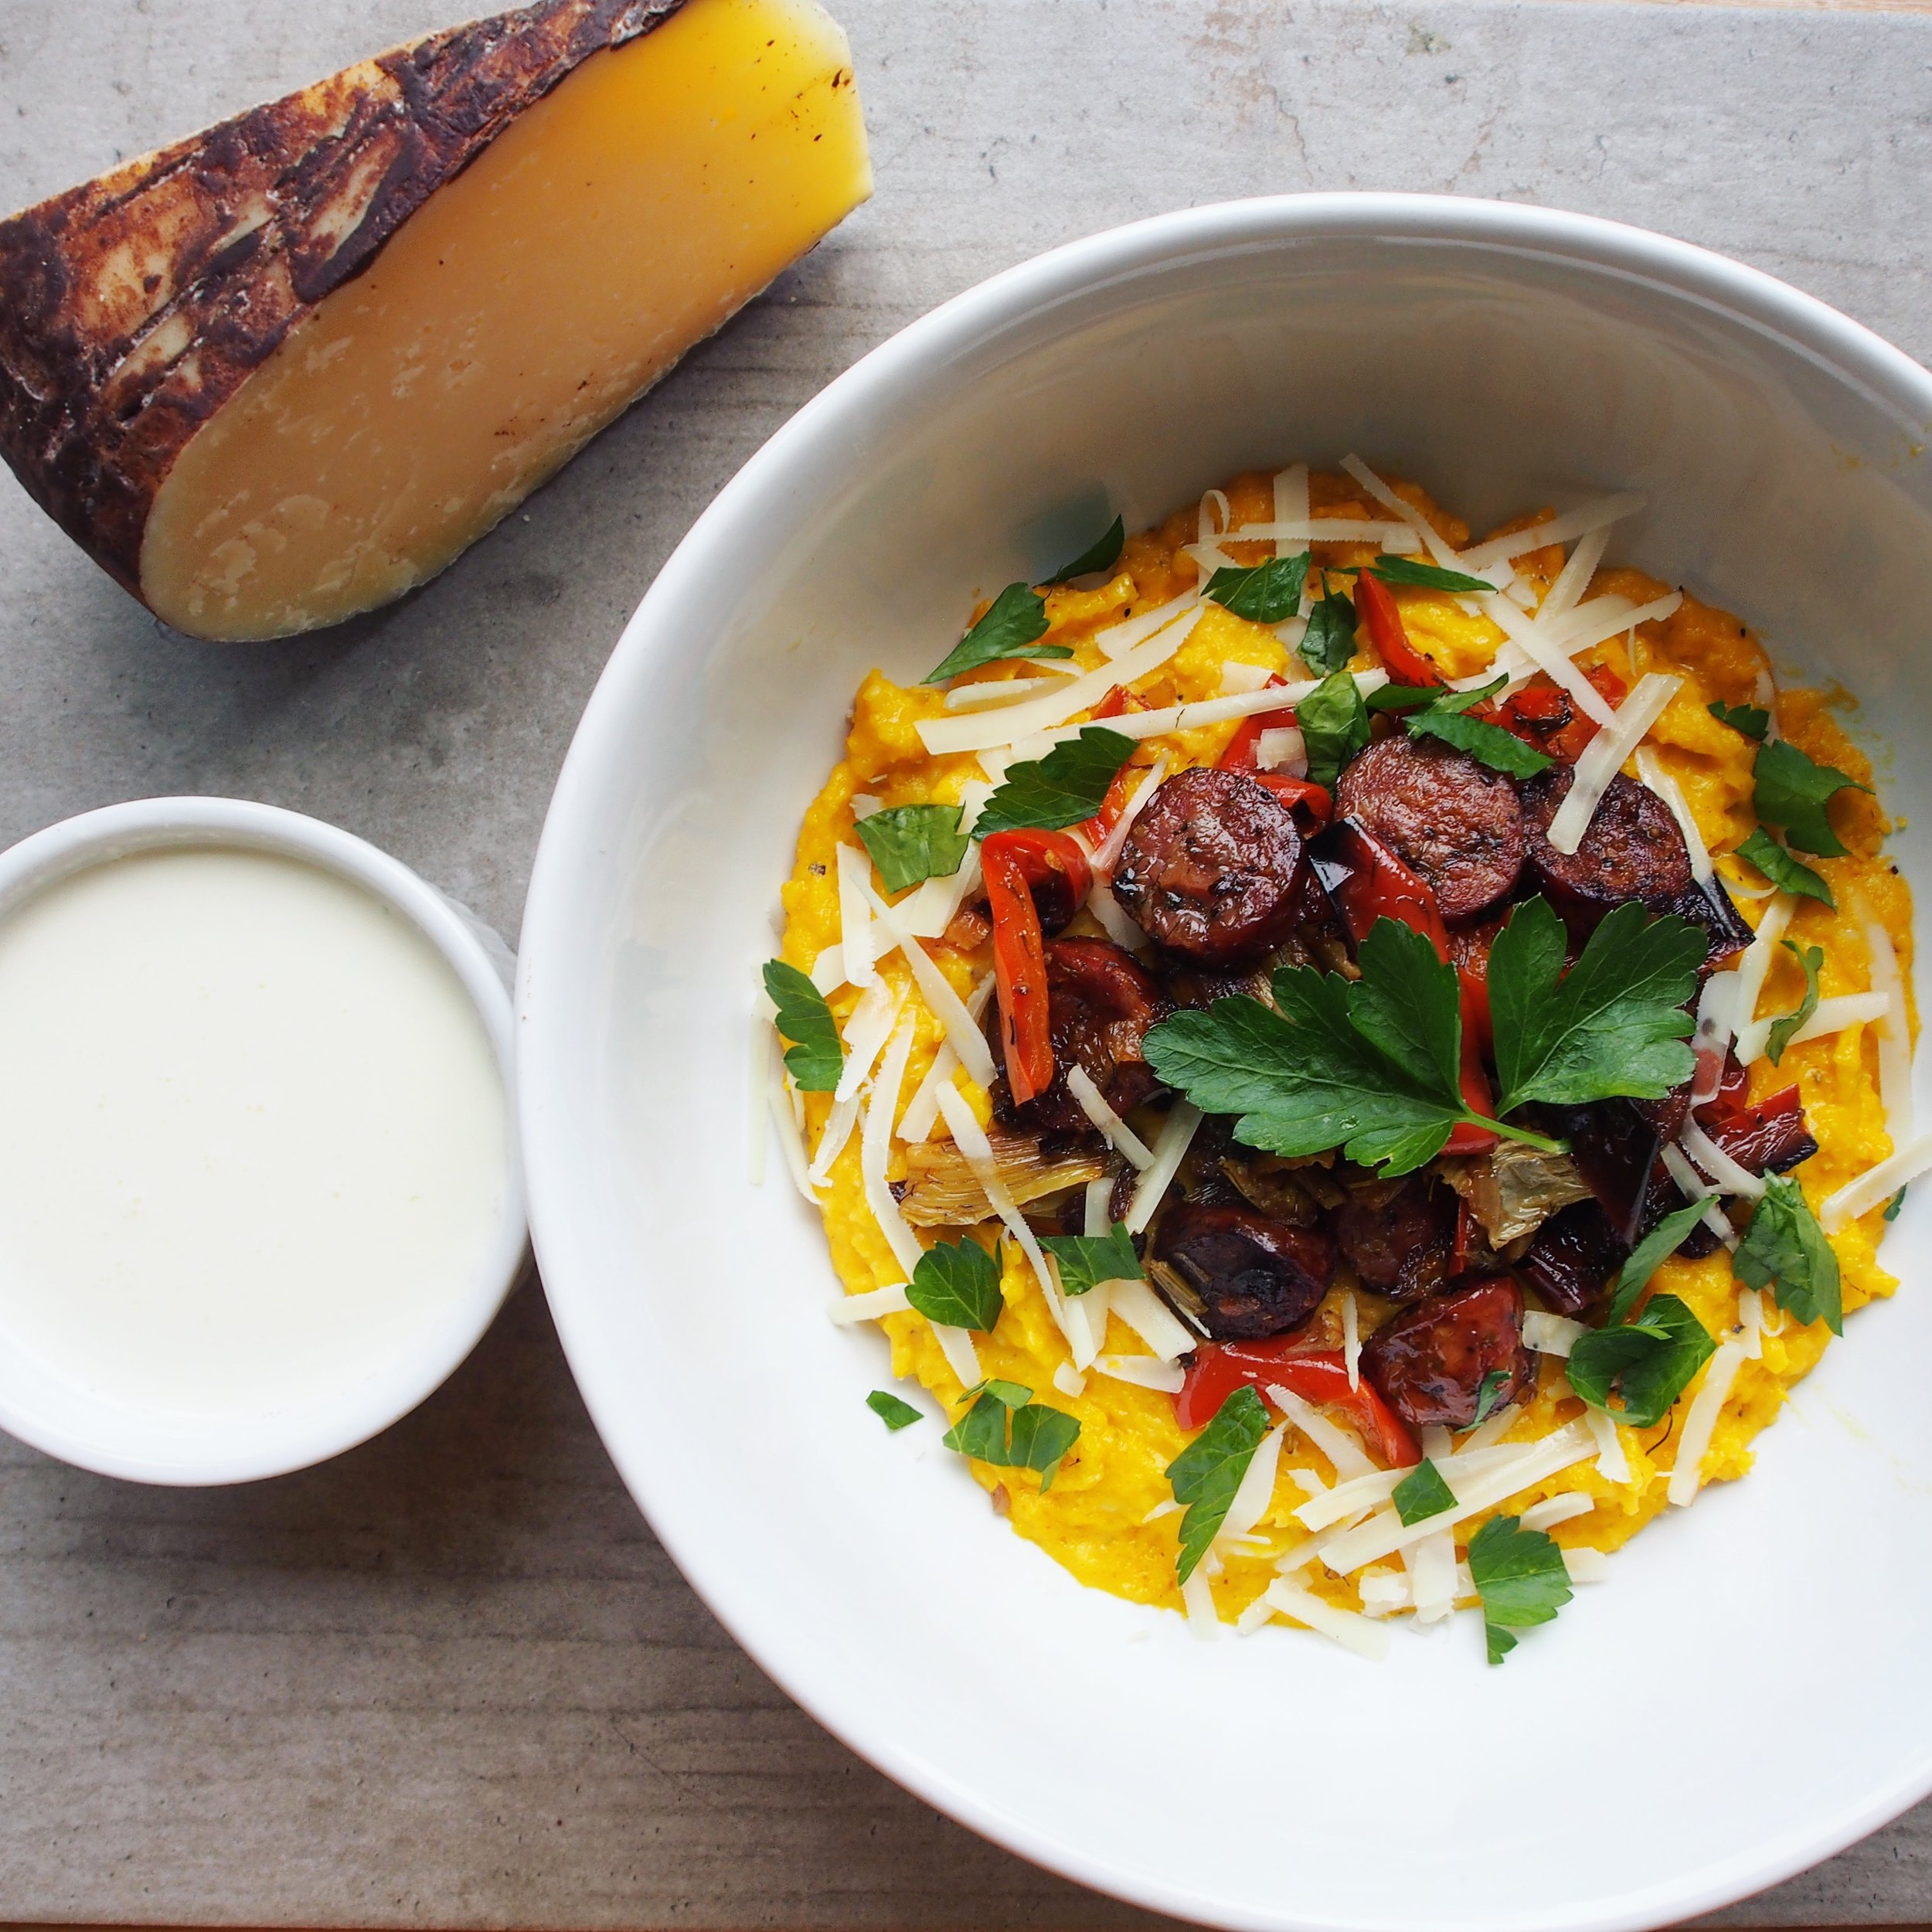 Homegrown Corn Polenta with Real California Milk Dry Jack Cheese and Queso Blanco. A tasty and authentic polenta dish that is easy and delicious and sure to please!